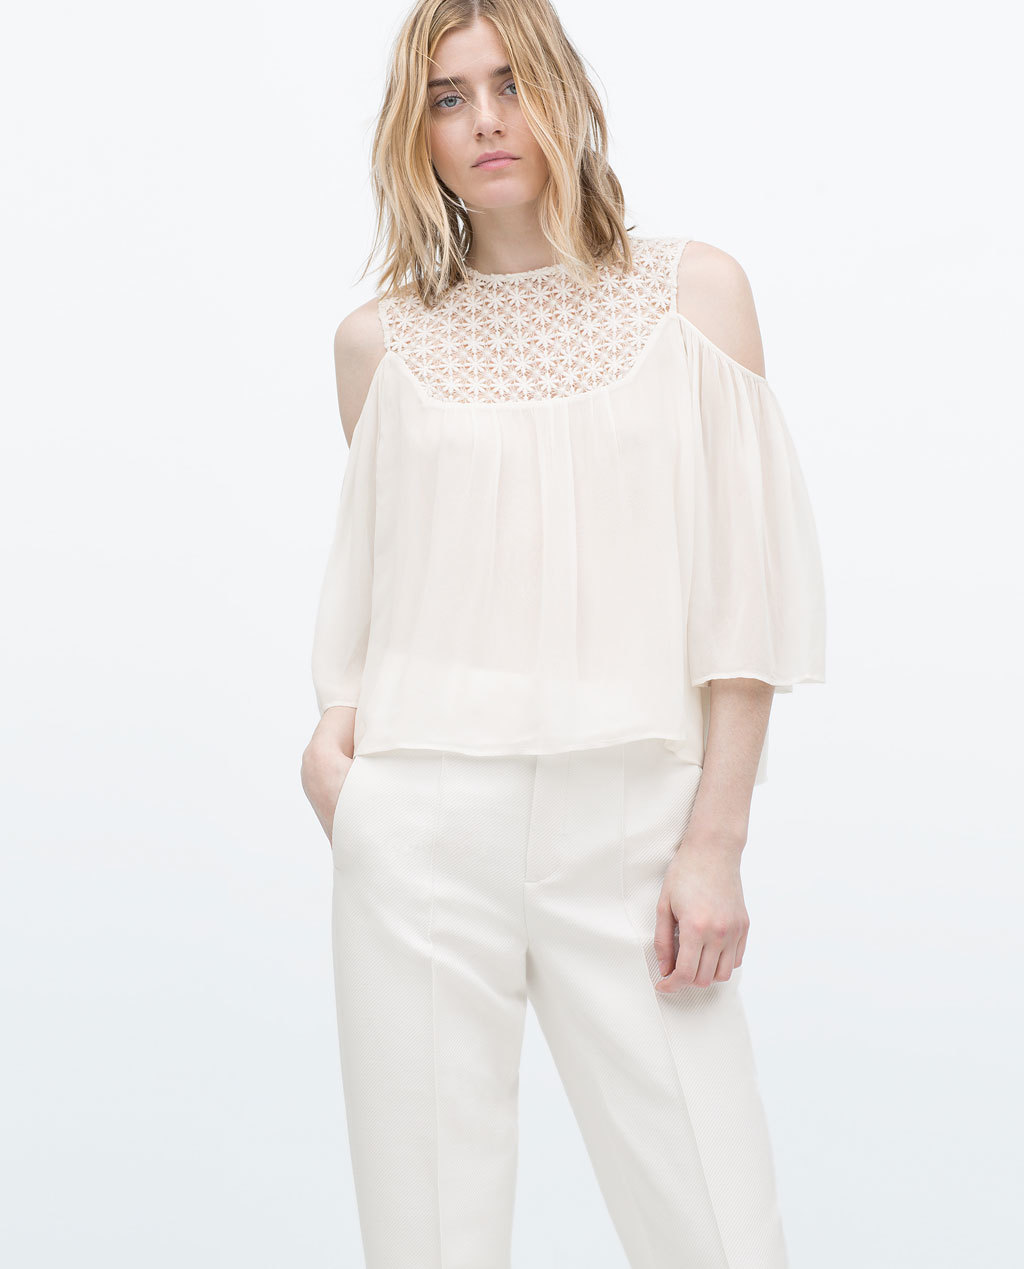 Guipure Lace Off Shoulder Blouse - sleeve style: angel/waterfall; pattern: plain; style: blouse; predominant colour: ivory/cream; occasions: casual, evening, occasion, creative work; length: standard; fibres: viscose/rayon - 100%; fit: straight cut; neckline: crew; shoulder detail: cut out shoulder; sleeve length: 3/4 length; texture group: sheer fabrics/chiffon/organza etc.; pattern type: fabric; season: s/s 2015